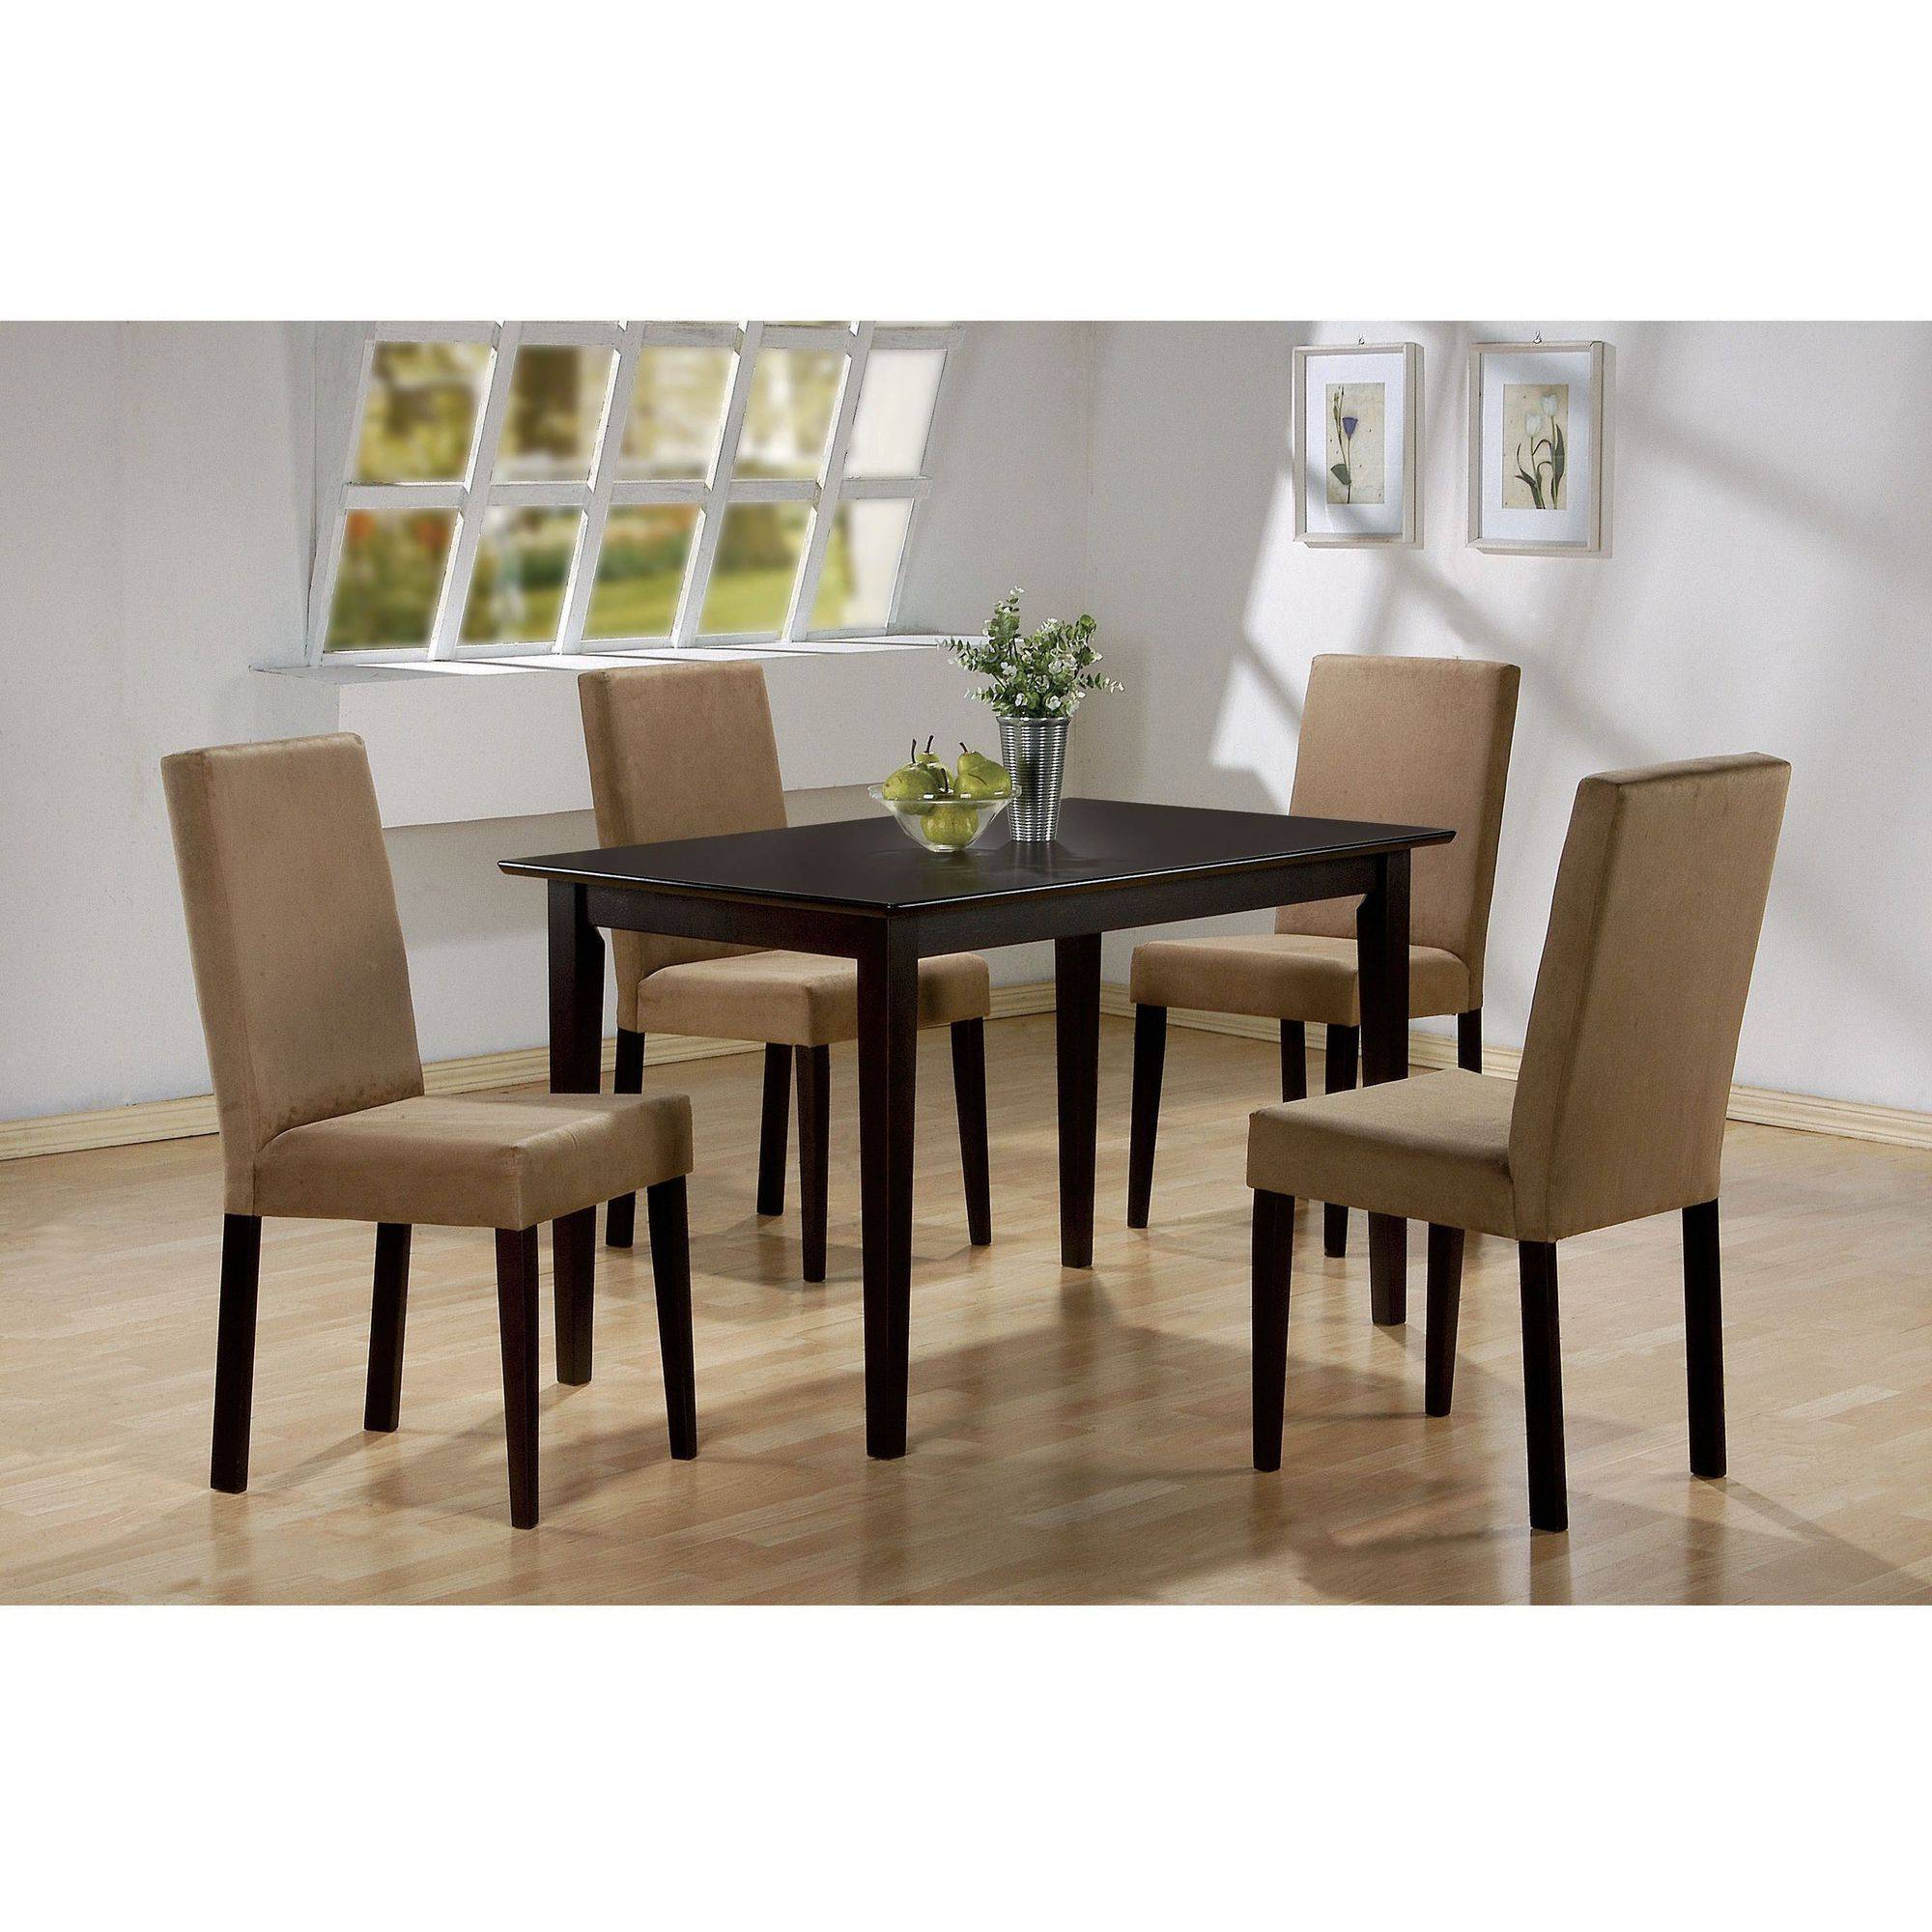 Coaster Company Clayton Dining Table, Chairs Sold Separately - Traveller Location